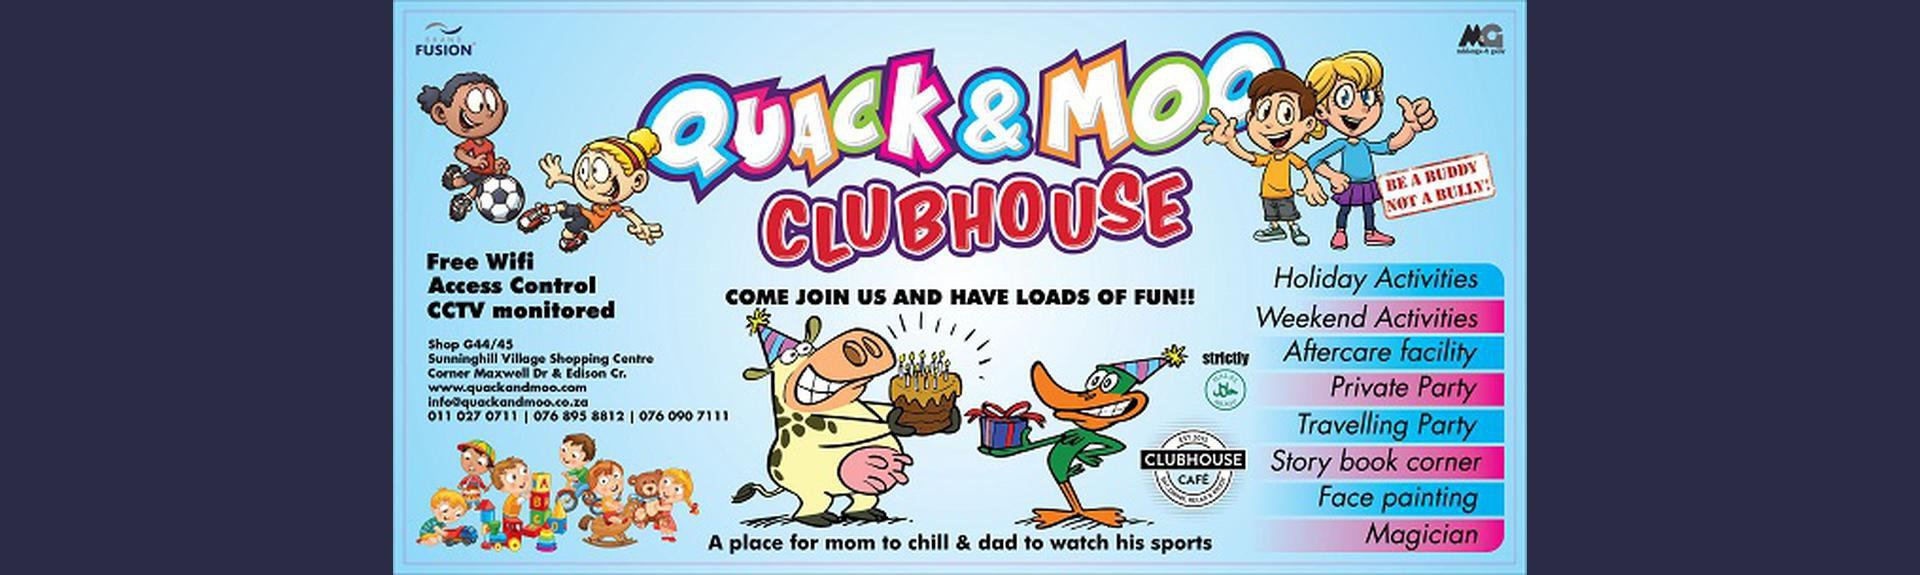 Quack and Moo Clubhouse